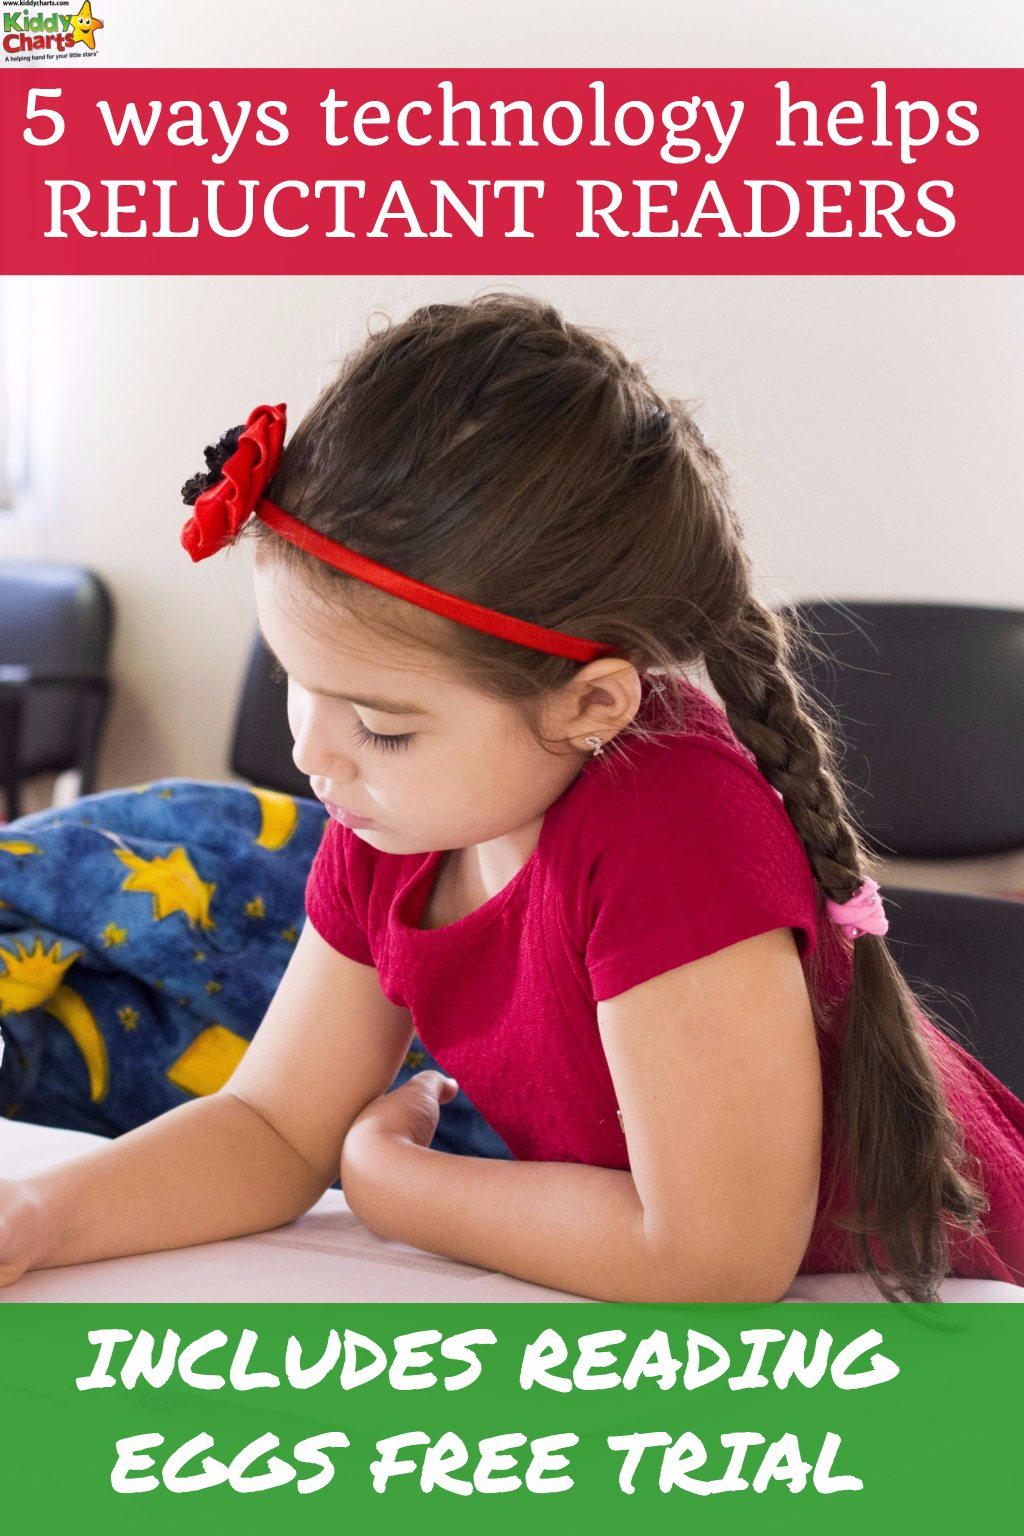 How can technology help the reluctant reader? We have a few ideas for helping your child learn to read PLUS a trial to Rerading Eggs to see if that helps you too!